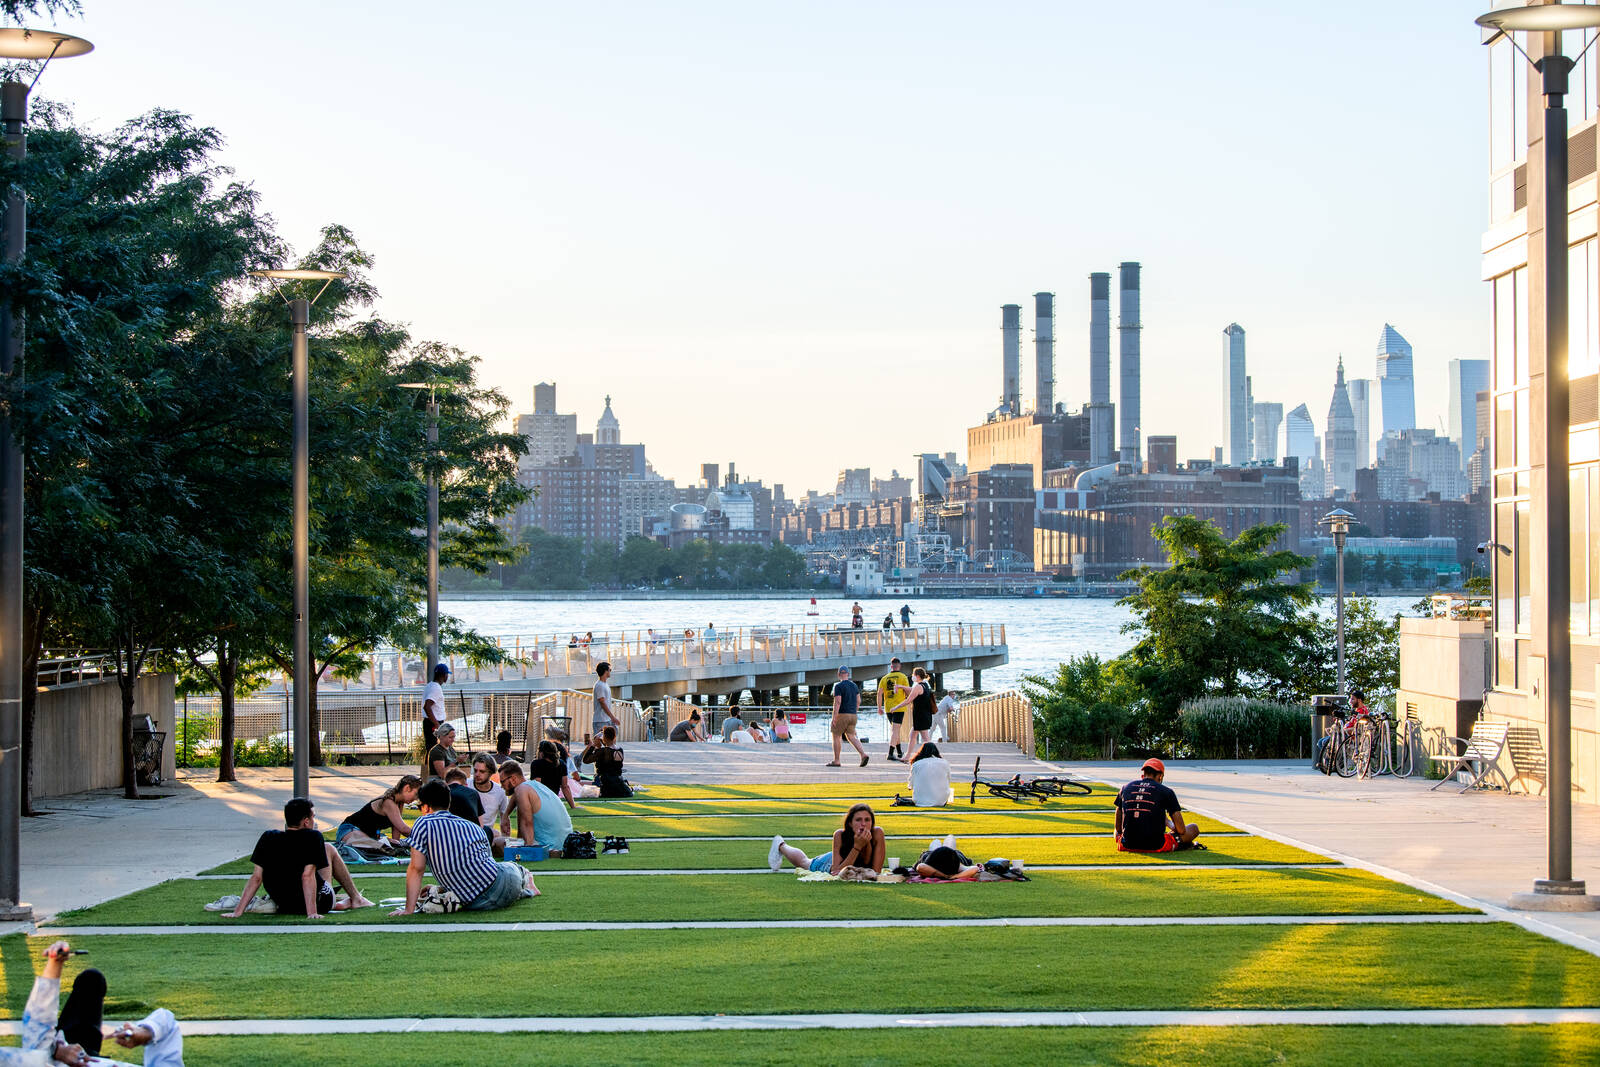 New Yorkers enjoy the outdoors near the pier in Williamsburg, Brooklyn on July 20, 2020 in New York, New York. Credit: Roy Rochlin/Getty Images